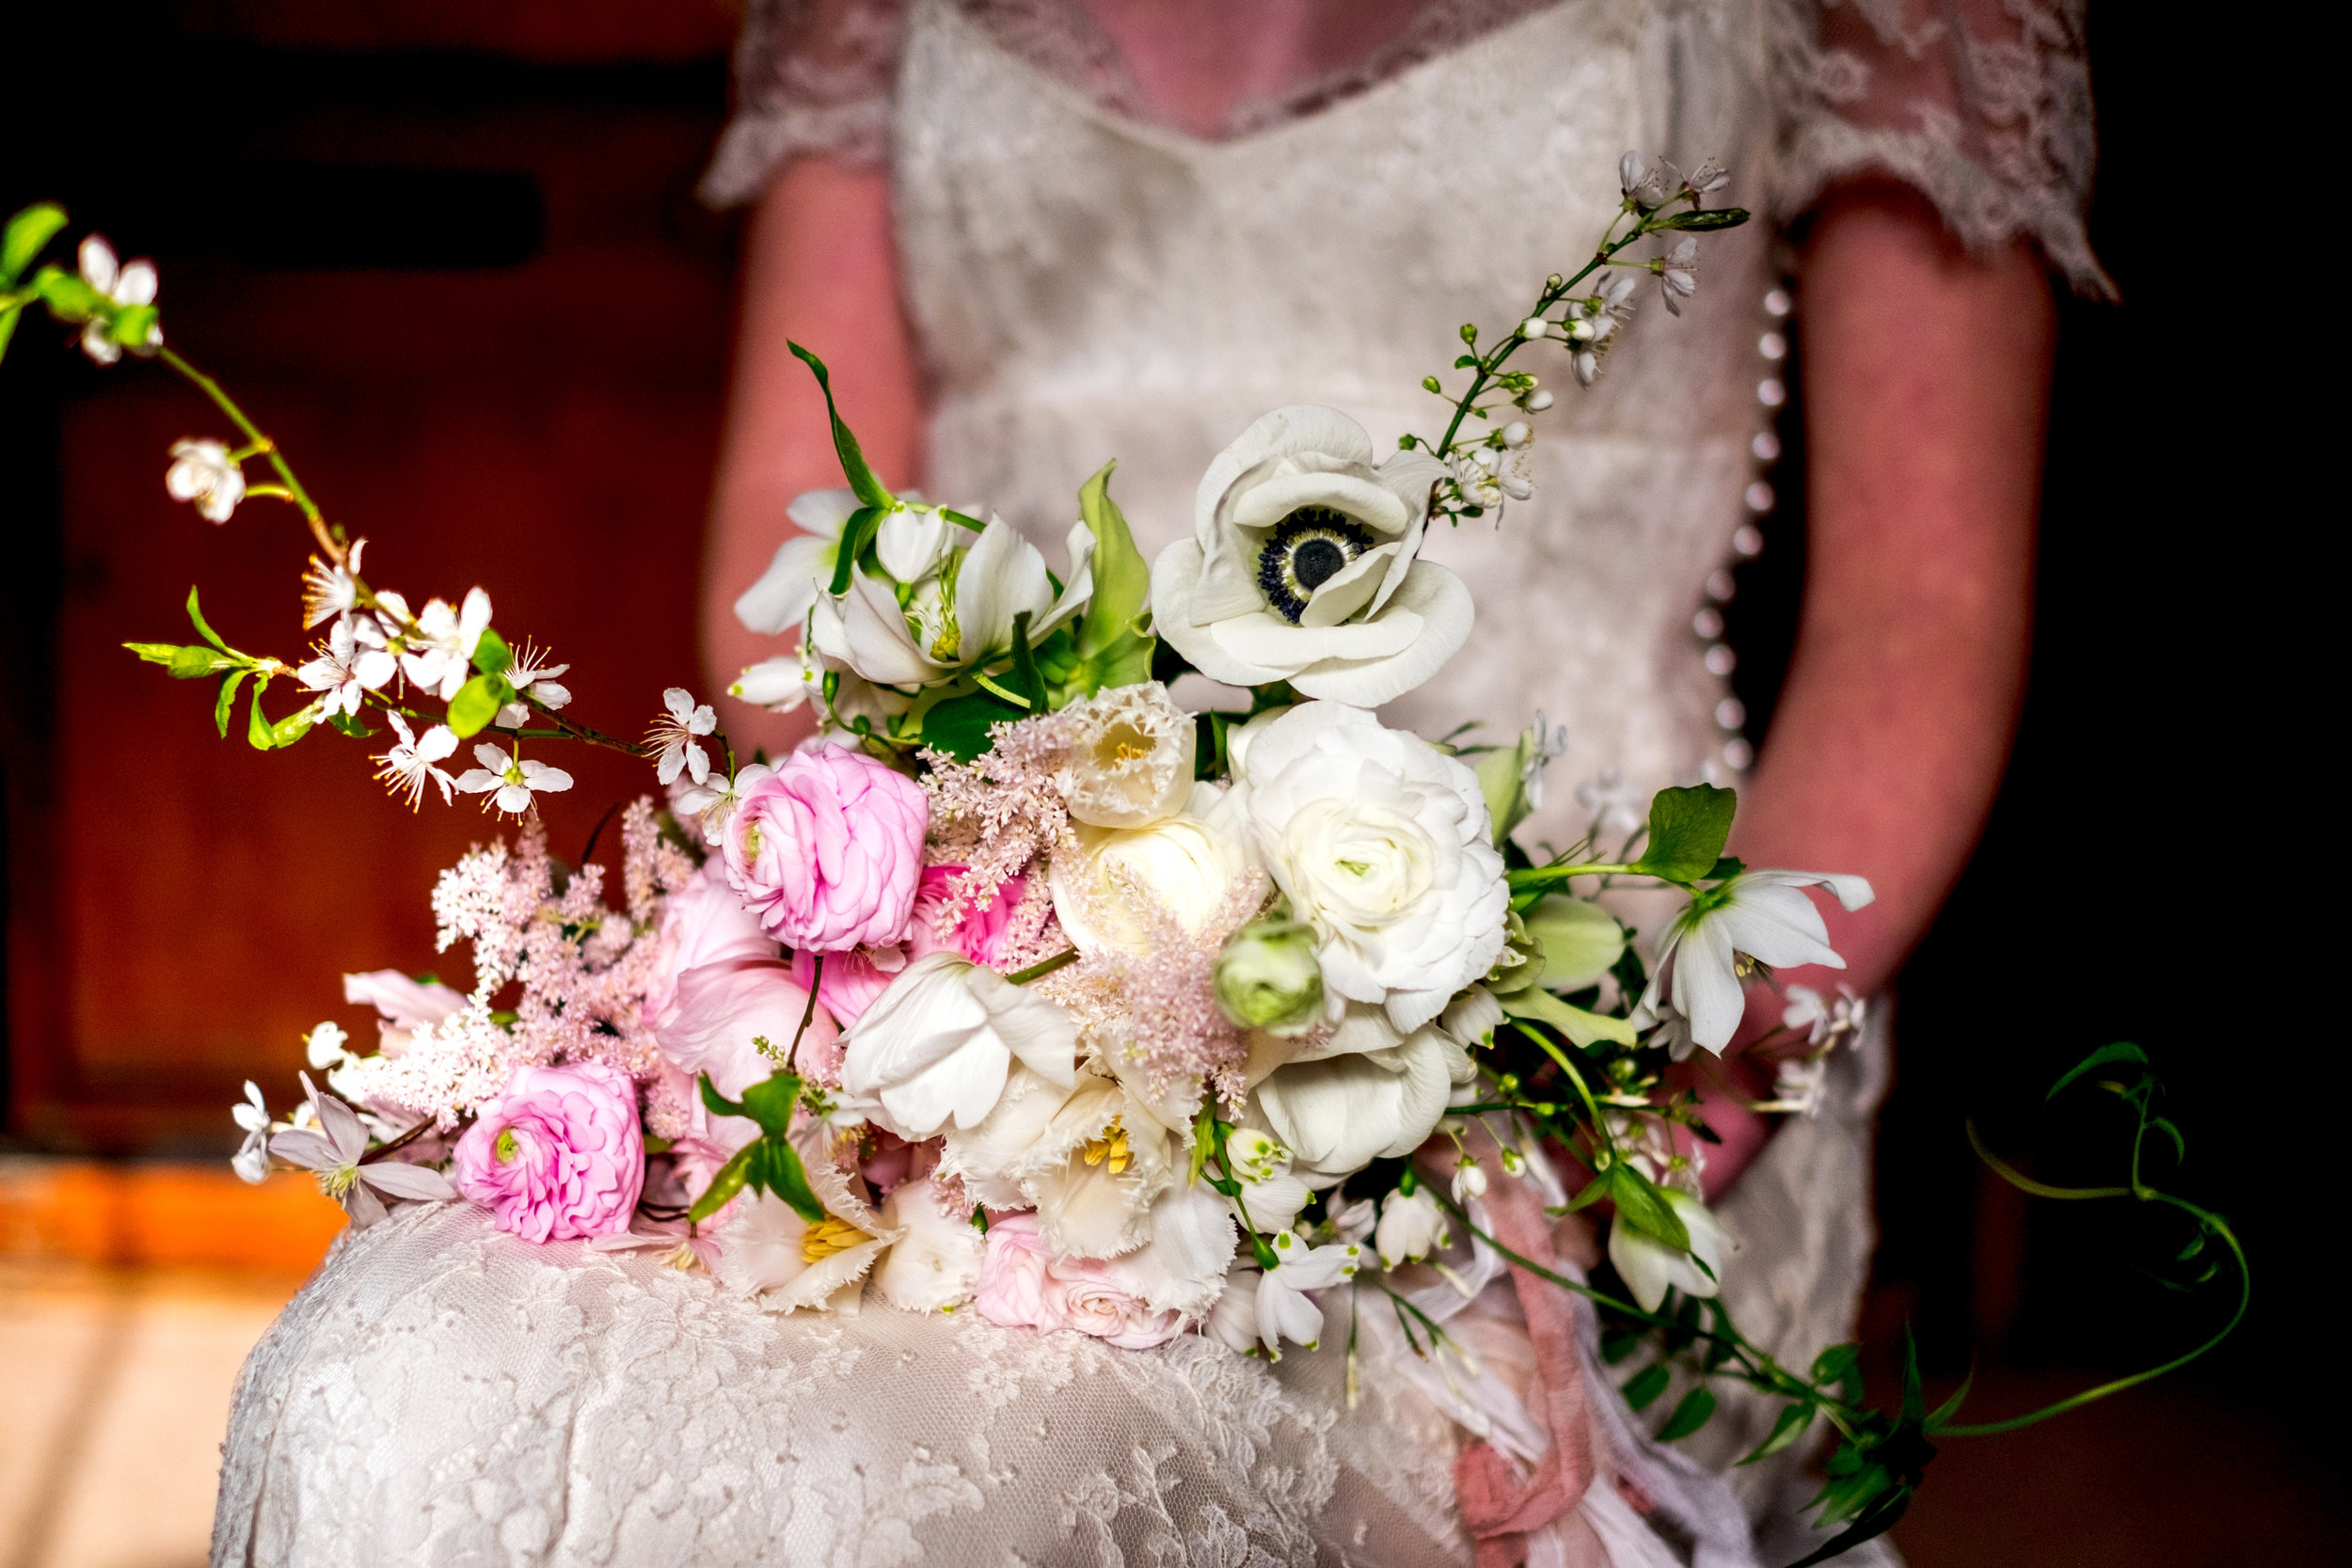 Image Dominic Whiten Florals - Moss & Stone Floral Design